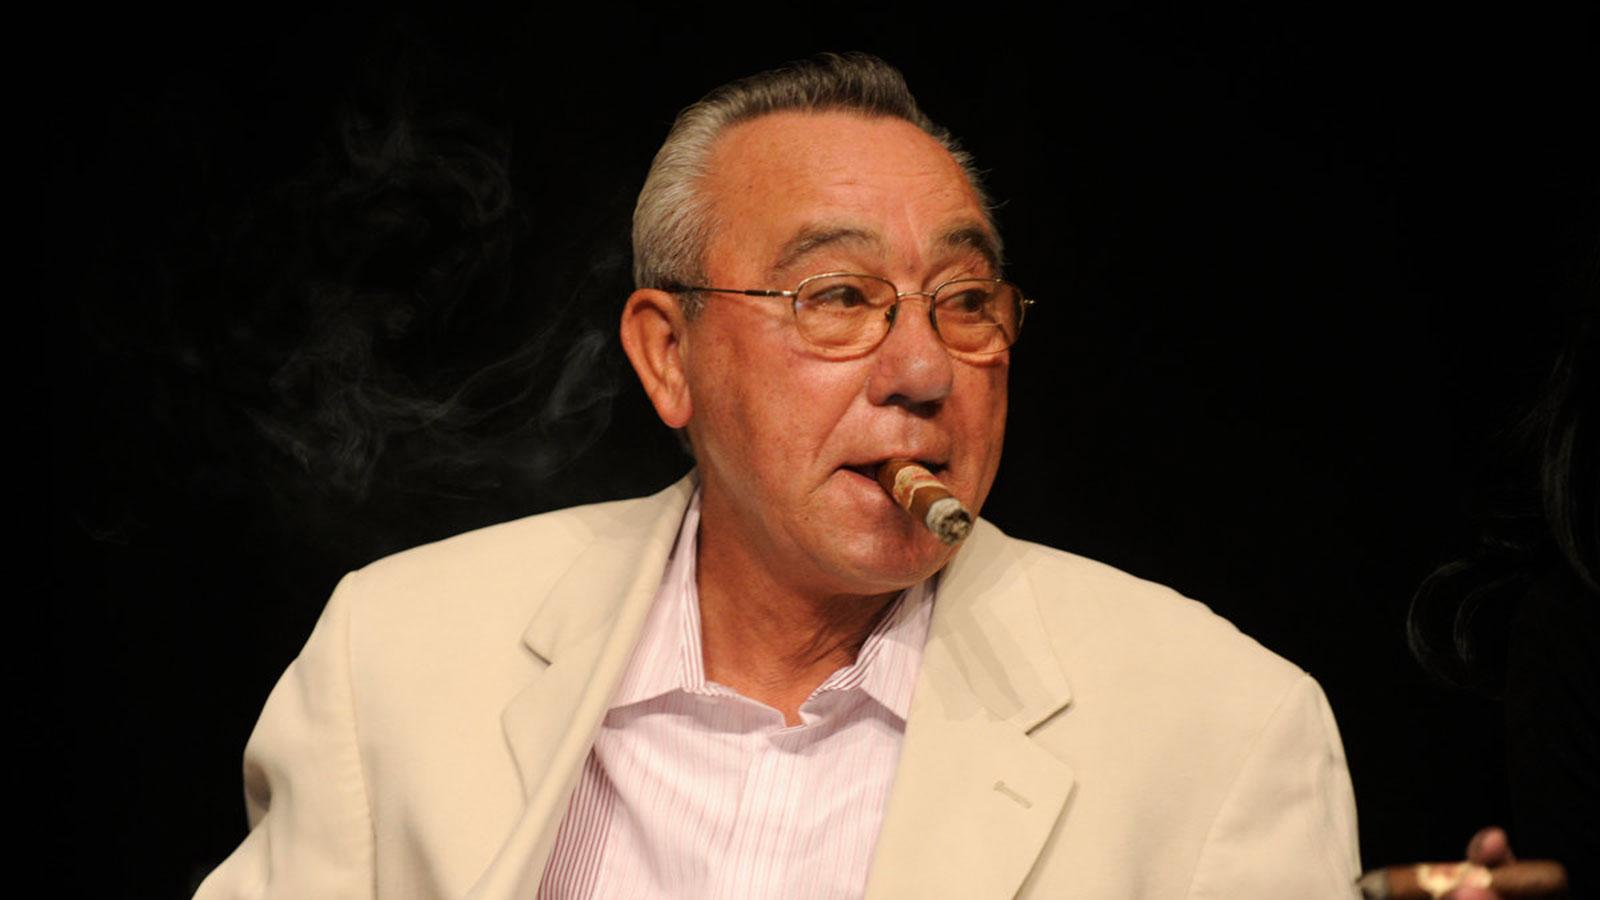 José Pepin Garcia of My Father Cigars Inc.